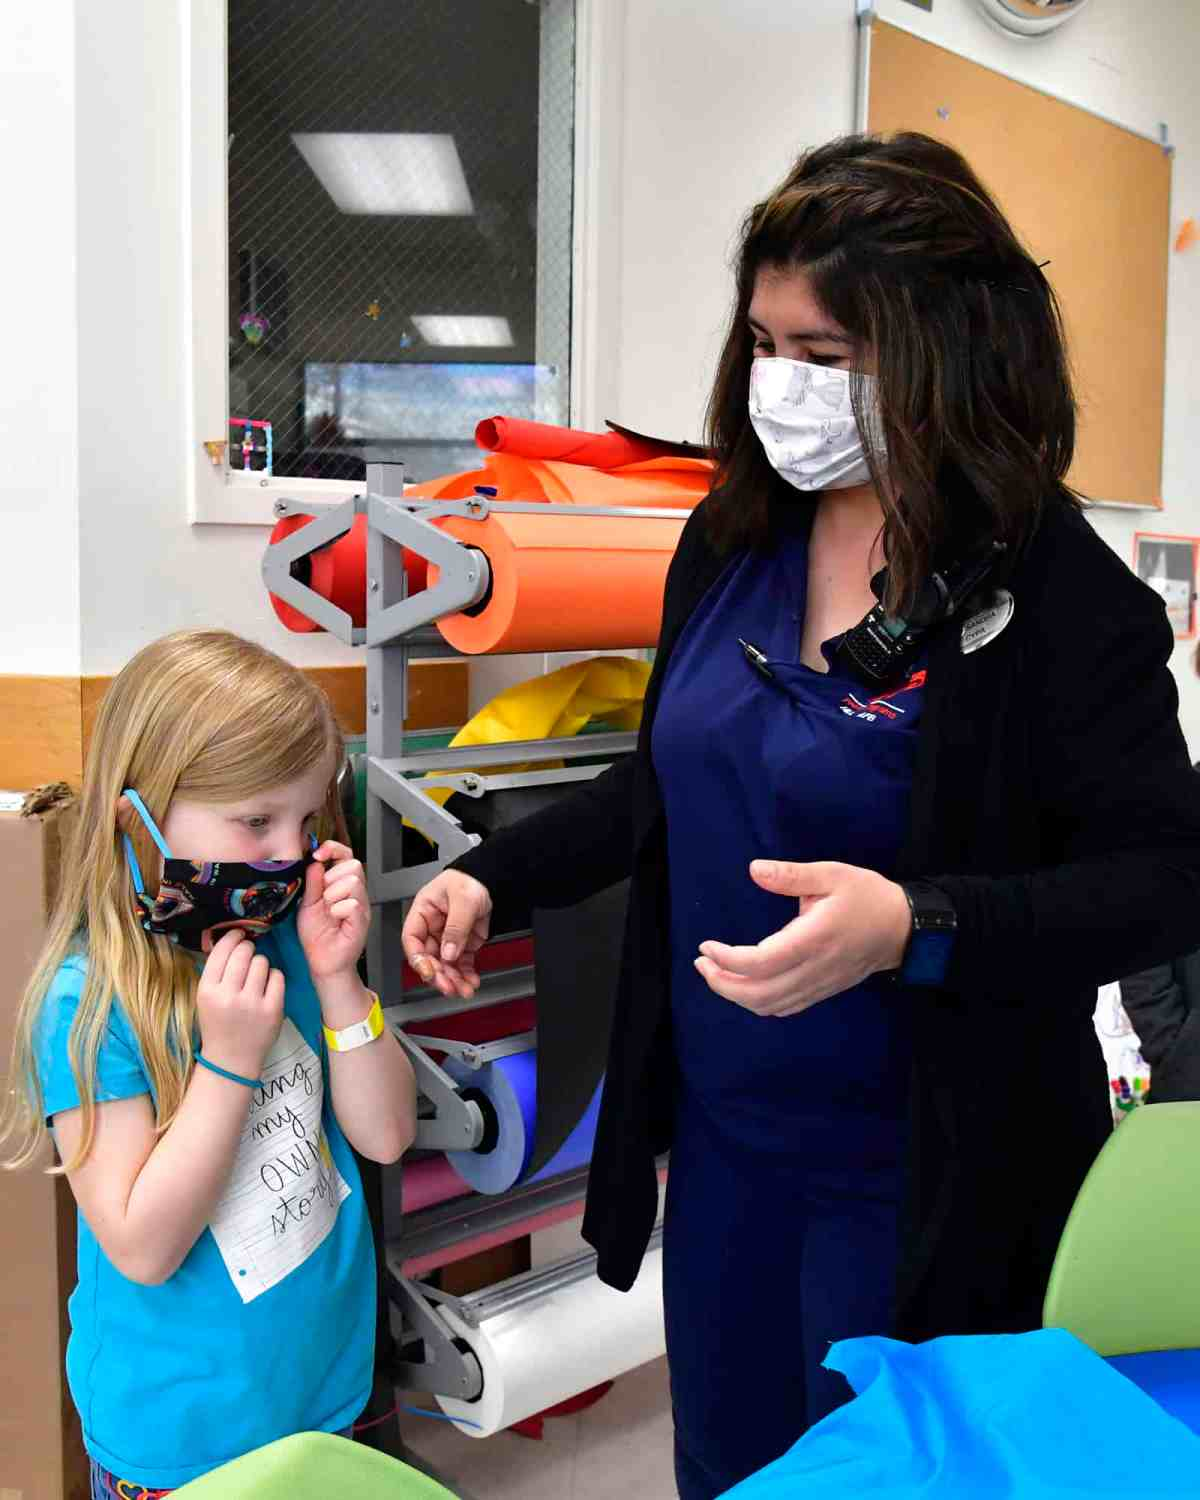 a small blonde girl in a t-shirt puts on a mask while a dark-haired woman stands by ready to help